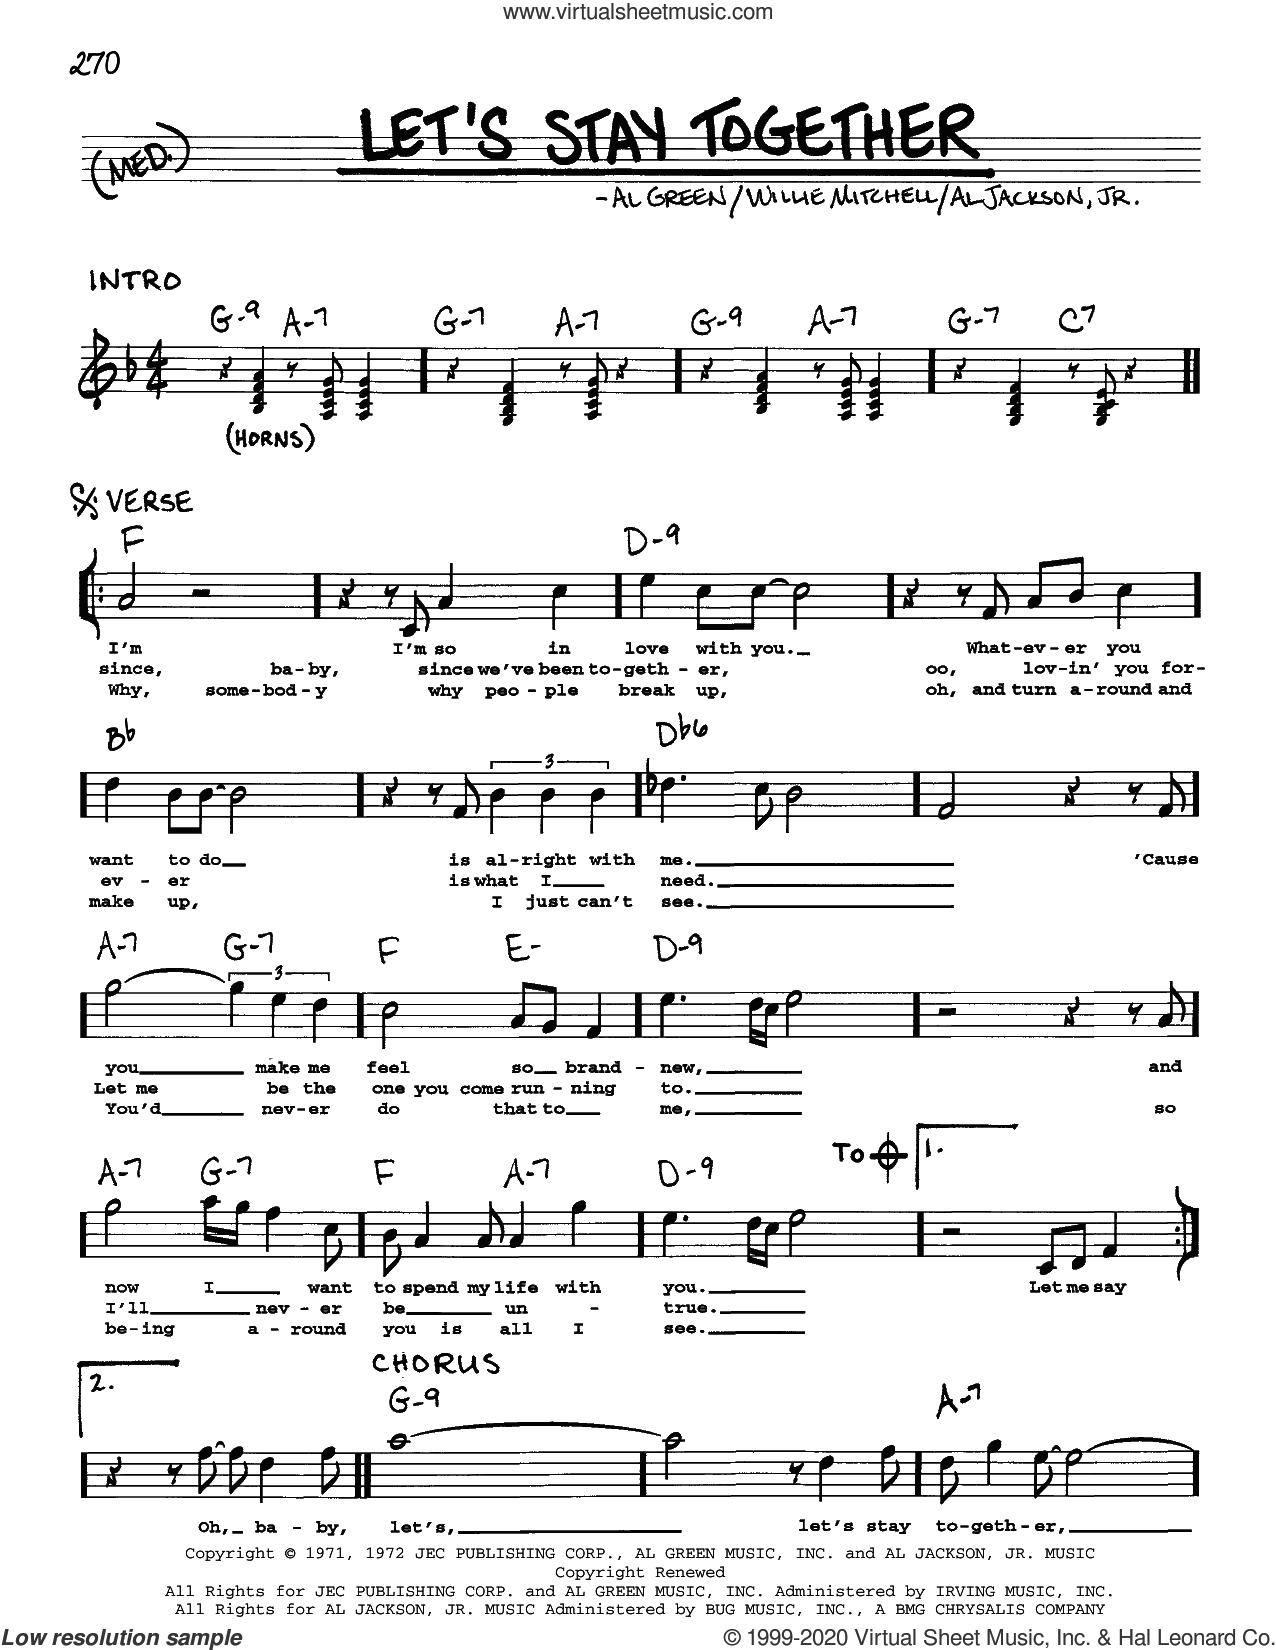 Let's Stay Together sheet music for voice and other instruments (real book) by Al Green, Al Jackson, Jr. and Willie Mitchell, intermediate skill level